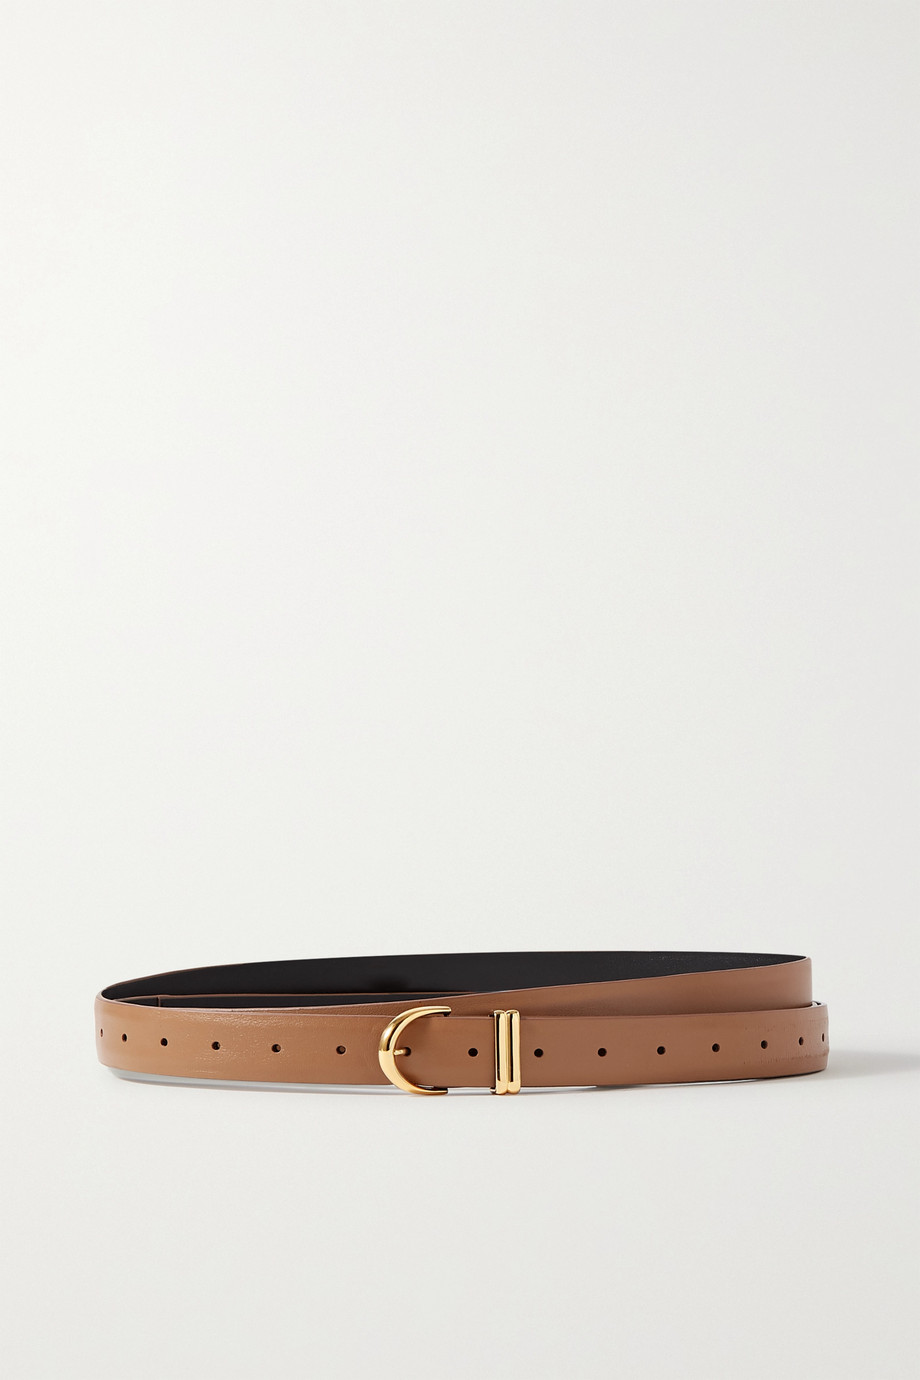 Khaite Brooke leather belt